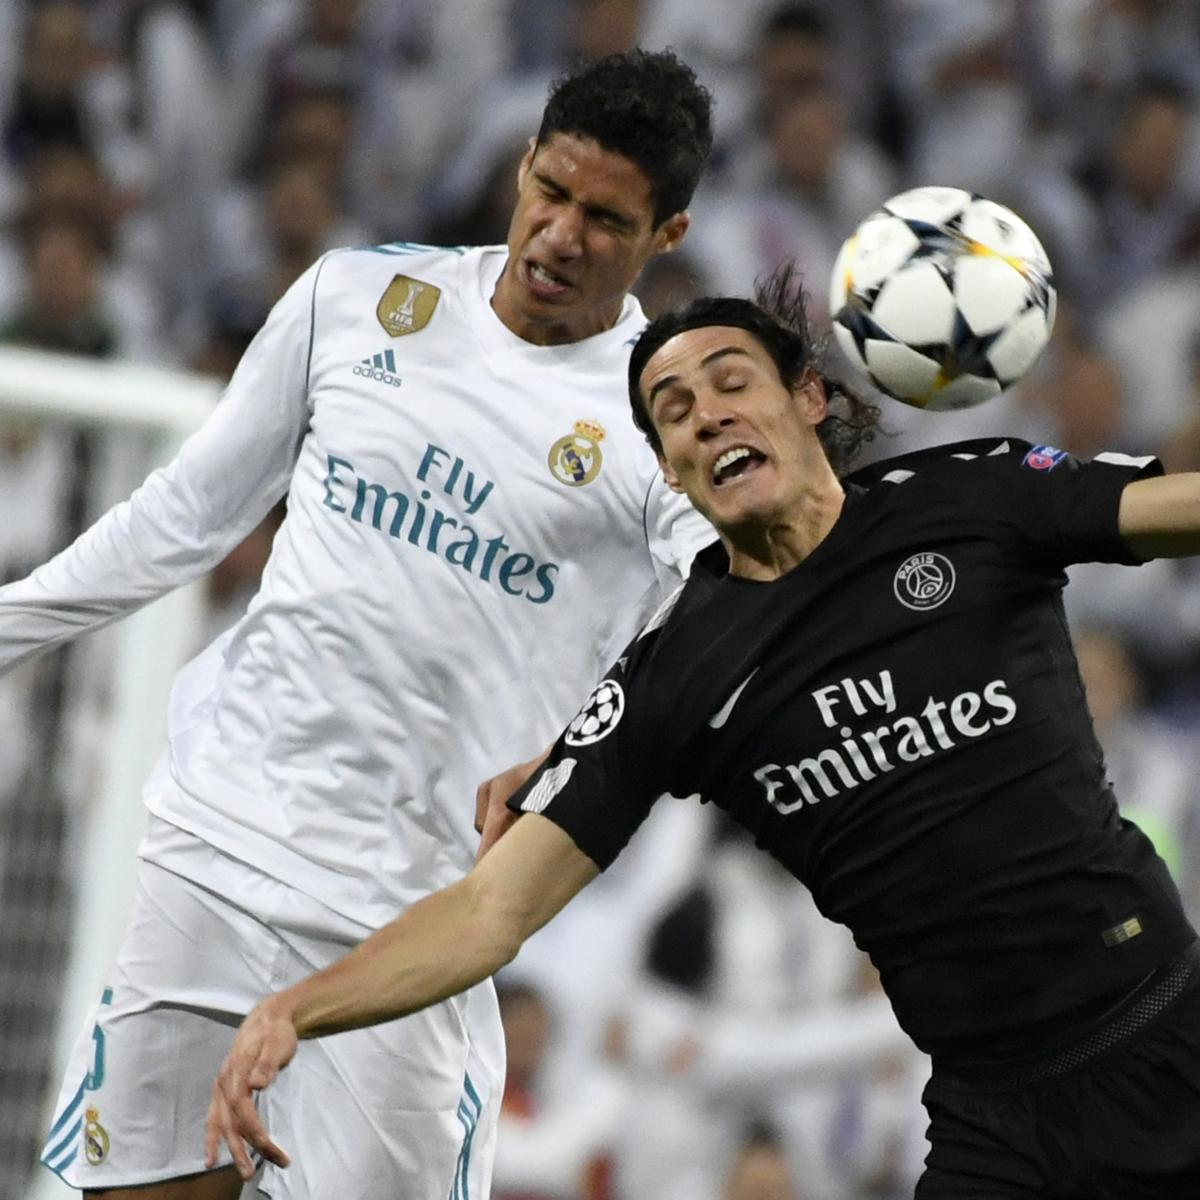 Psg Vs Manchester City Live Score Highlights From: PSG Vs. Real Madrid: Preview, Live Stream, TV Info For UCL